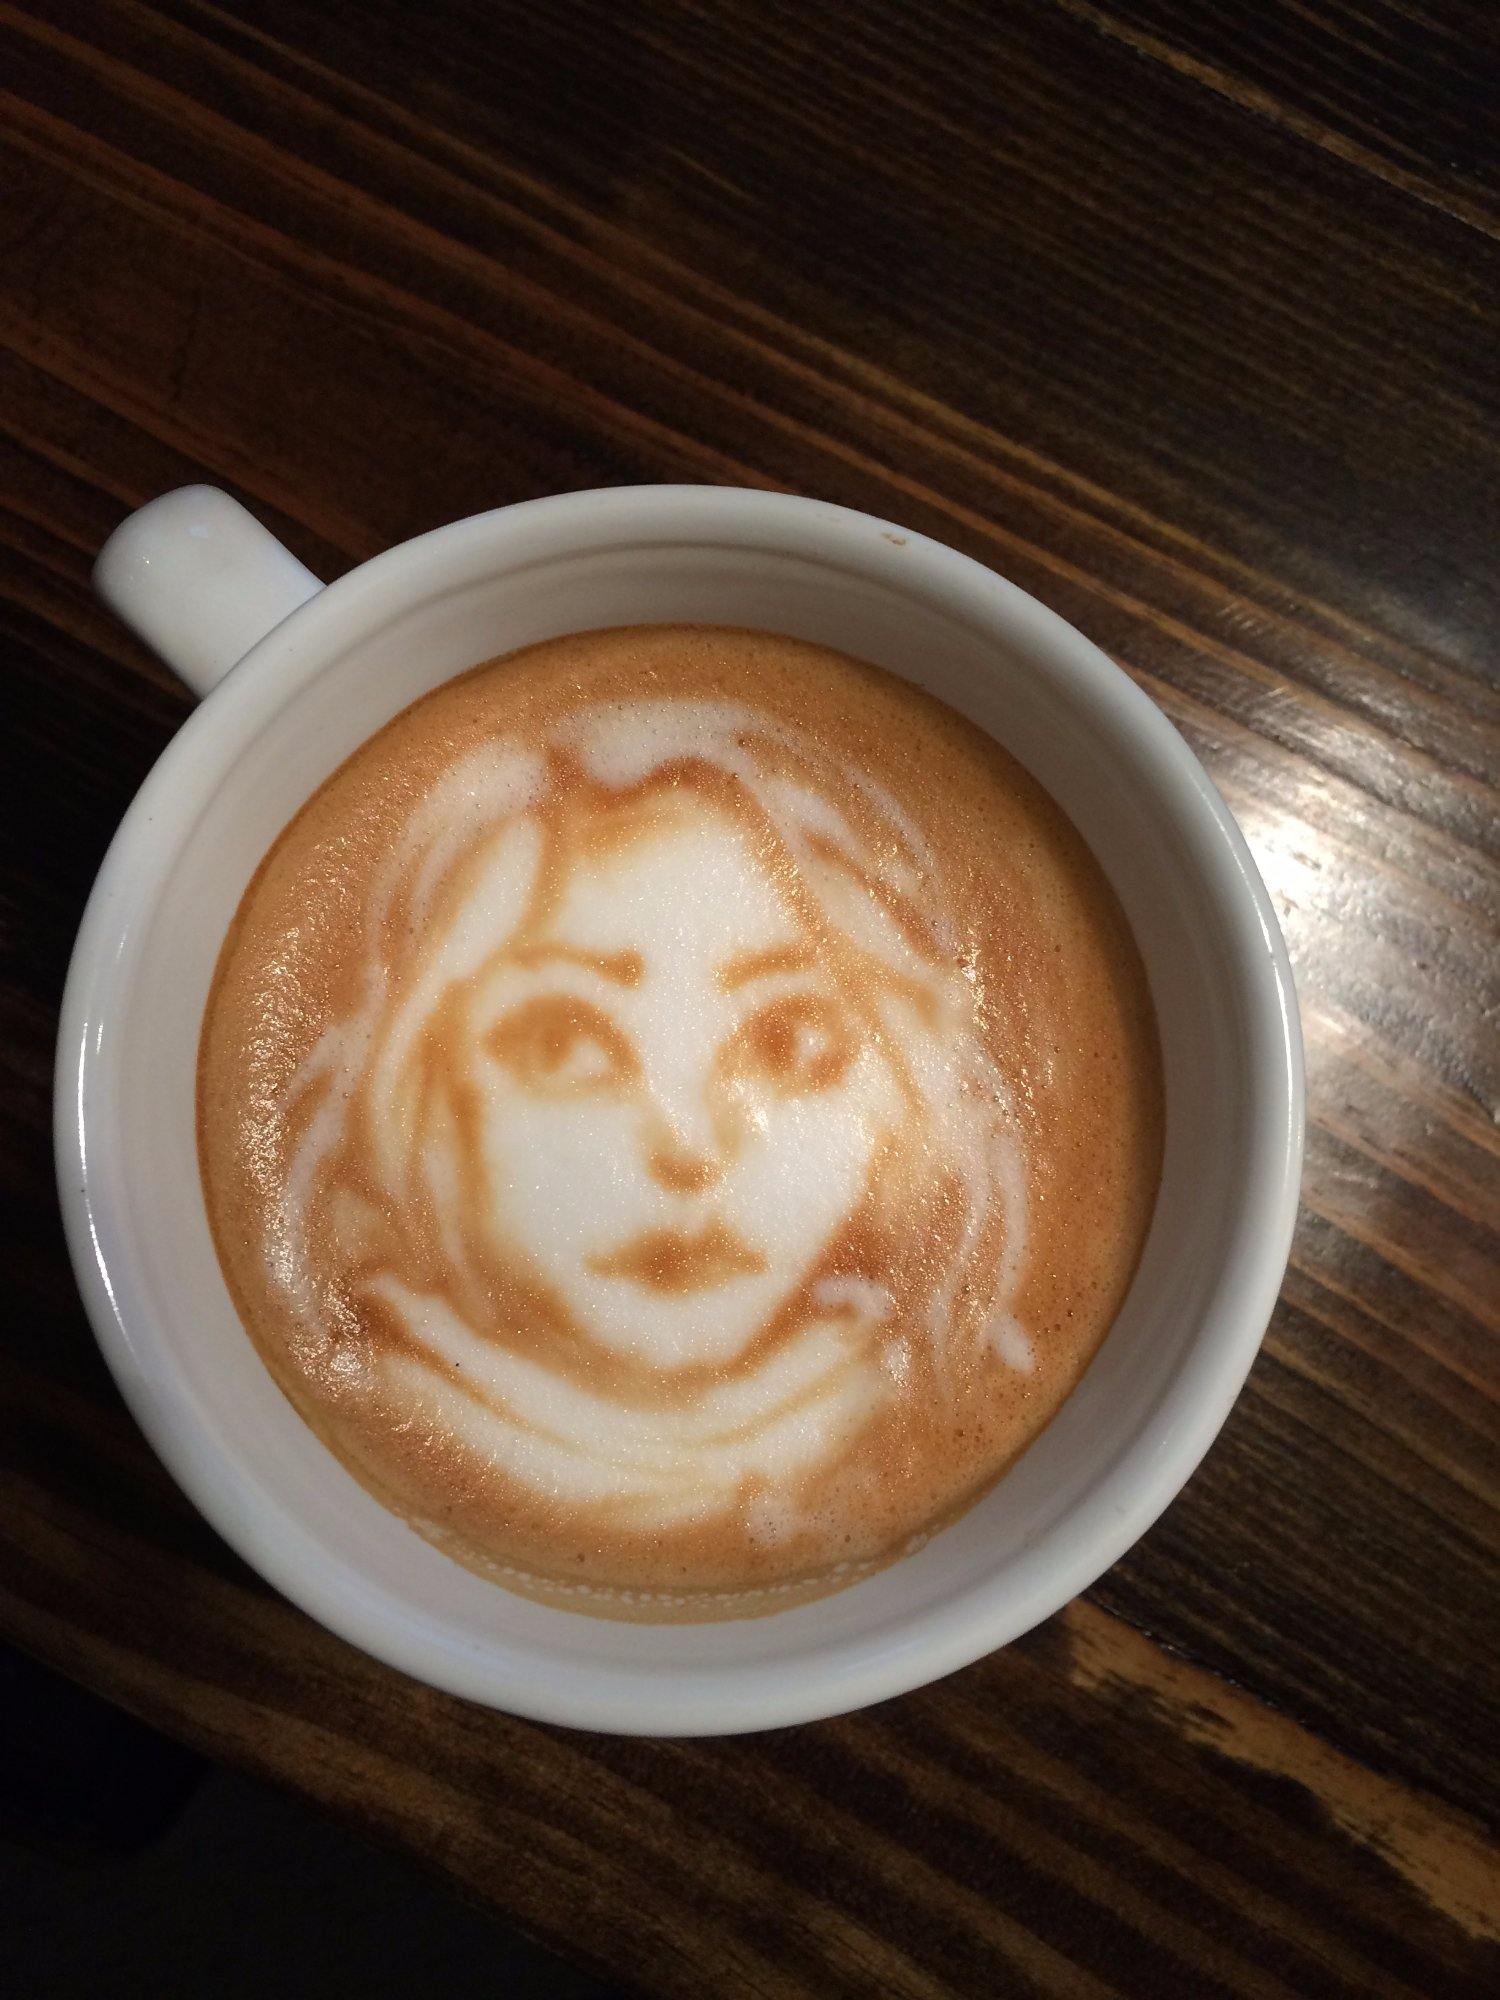 Latte art by Abigail!